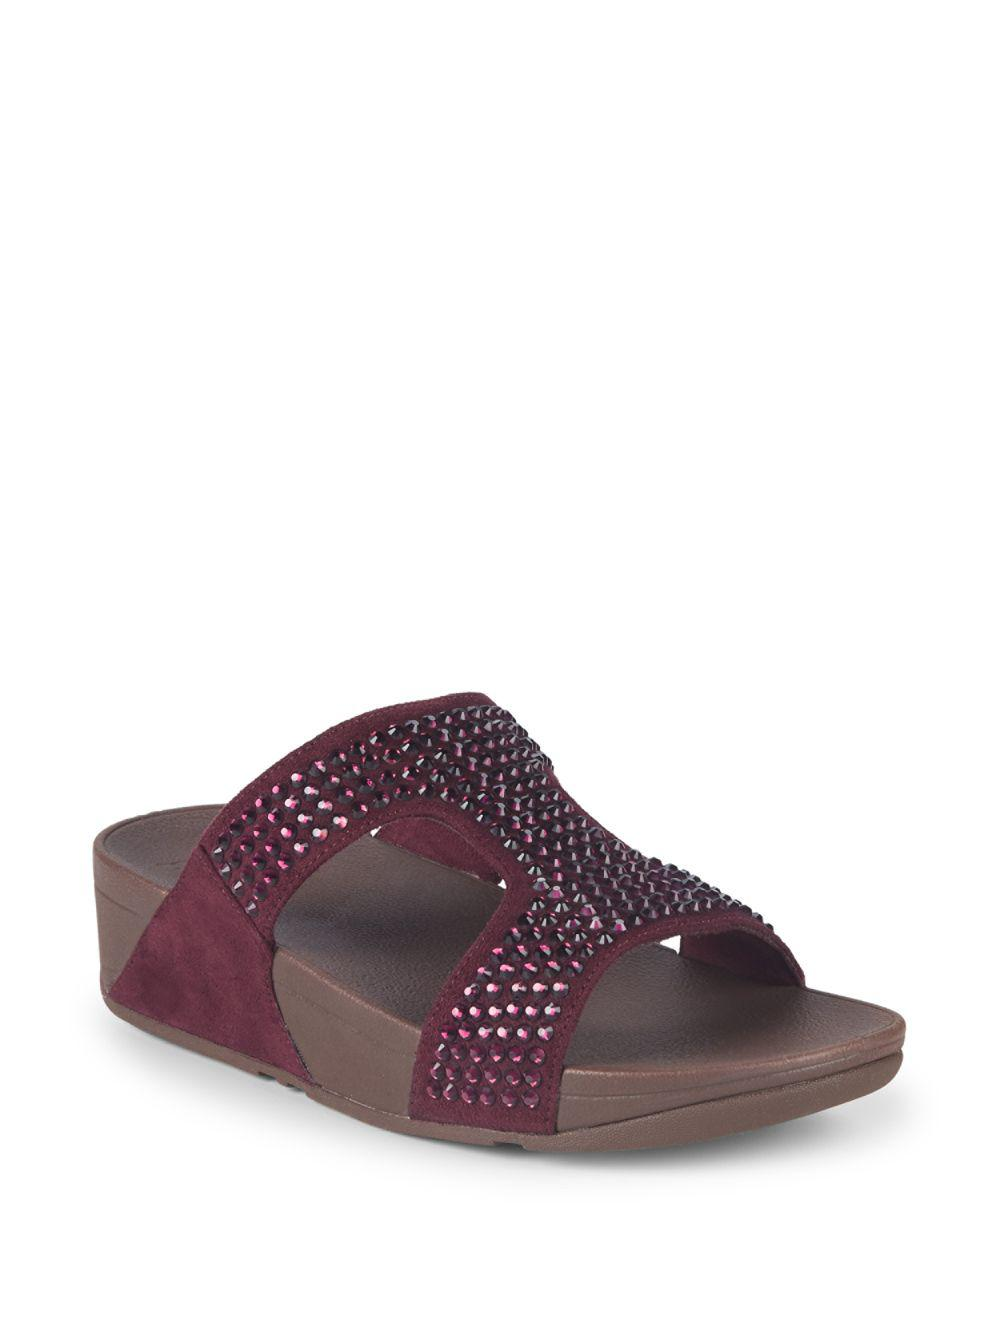 6aae55cc8968 Fitflop. Women s Glitzie Slide Sandals